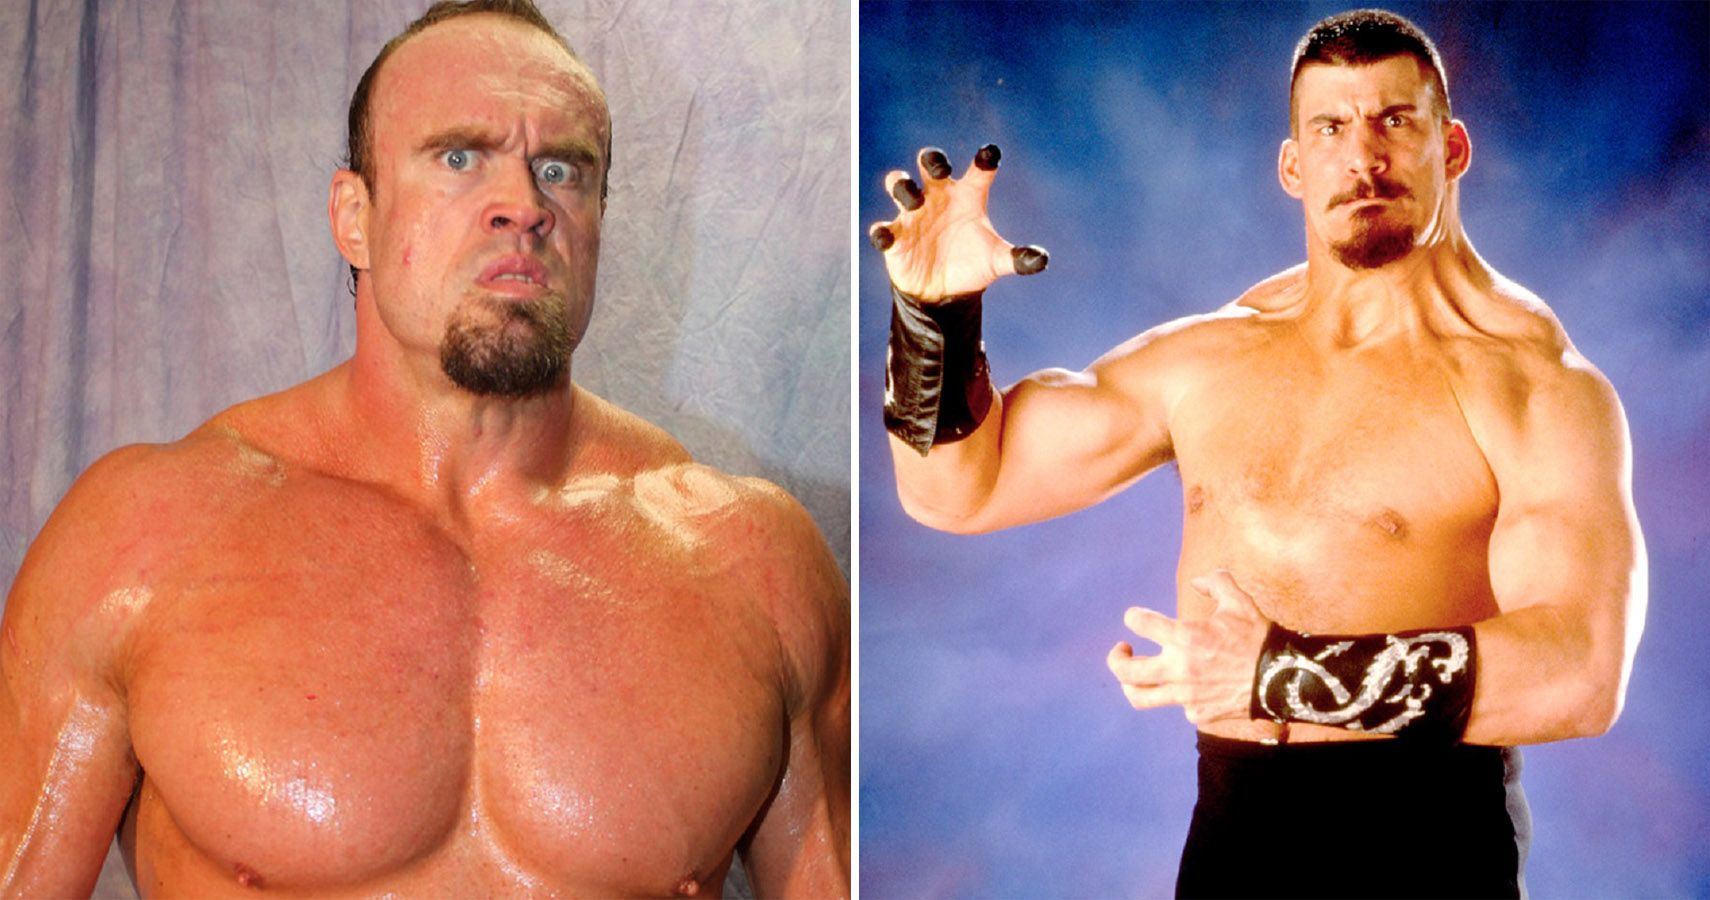 Top 15 Least Intimidating Wrestling Characters Of All Time